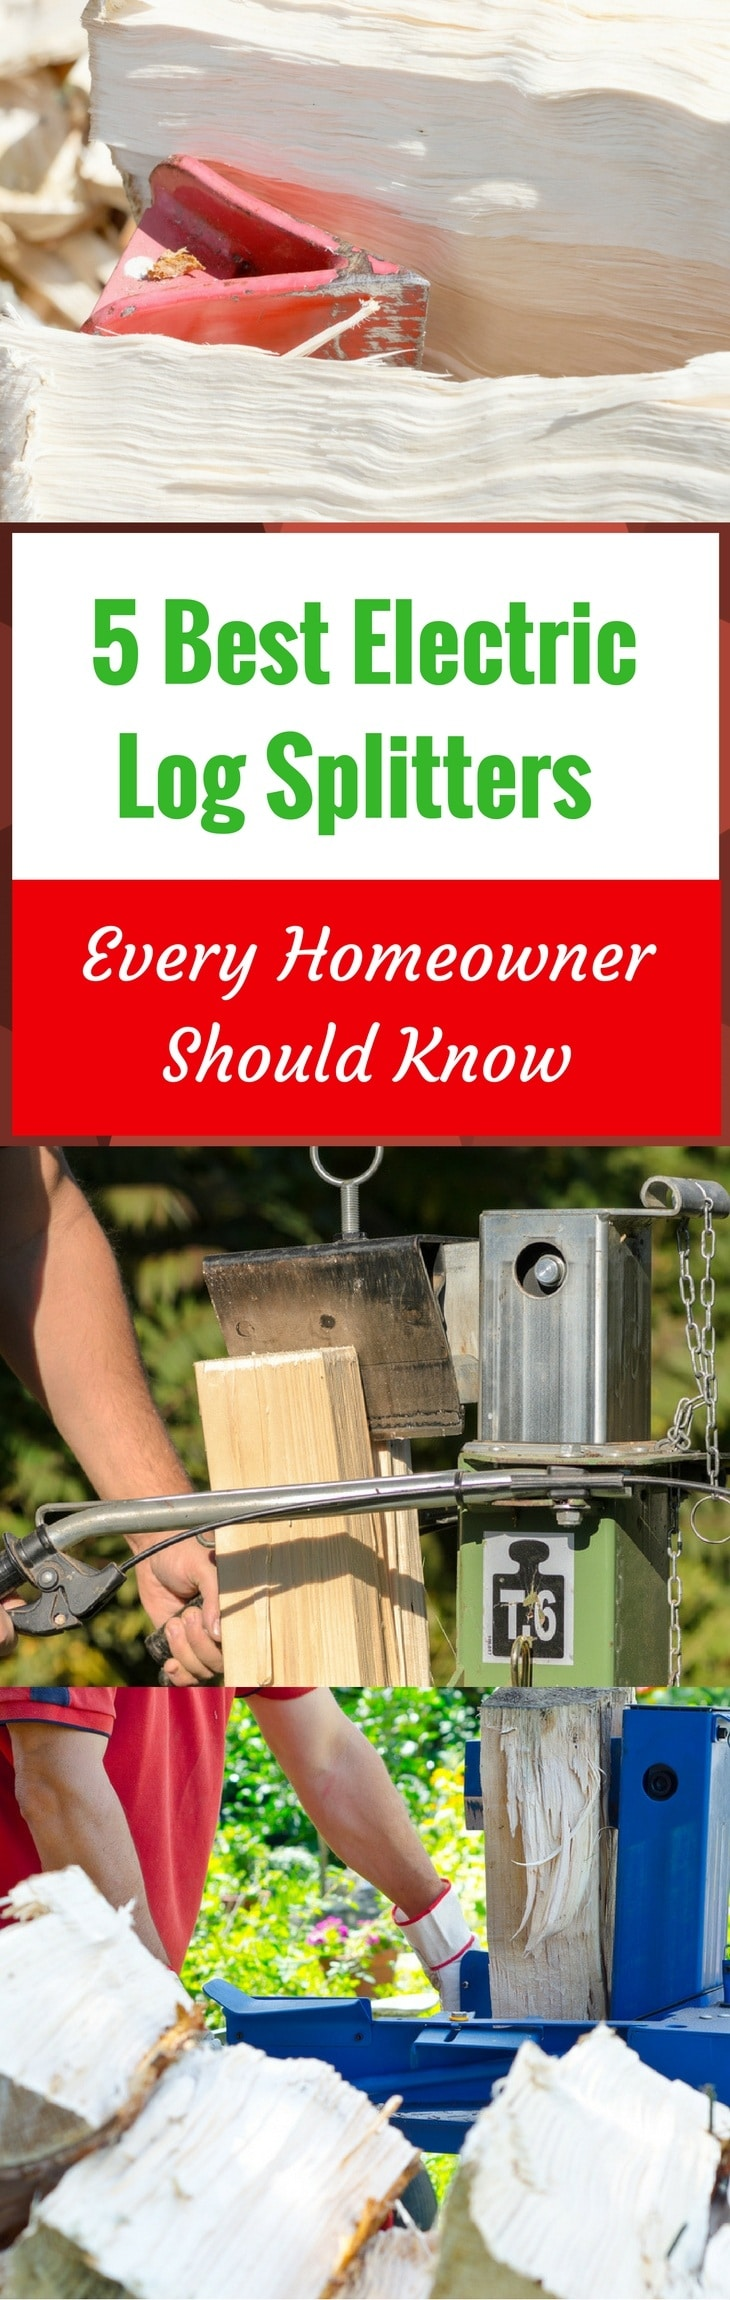 5 Best Electric Log Splitters Every Homeowner Should Know - pin it